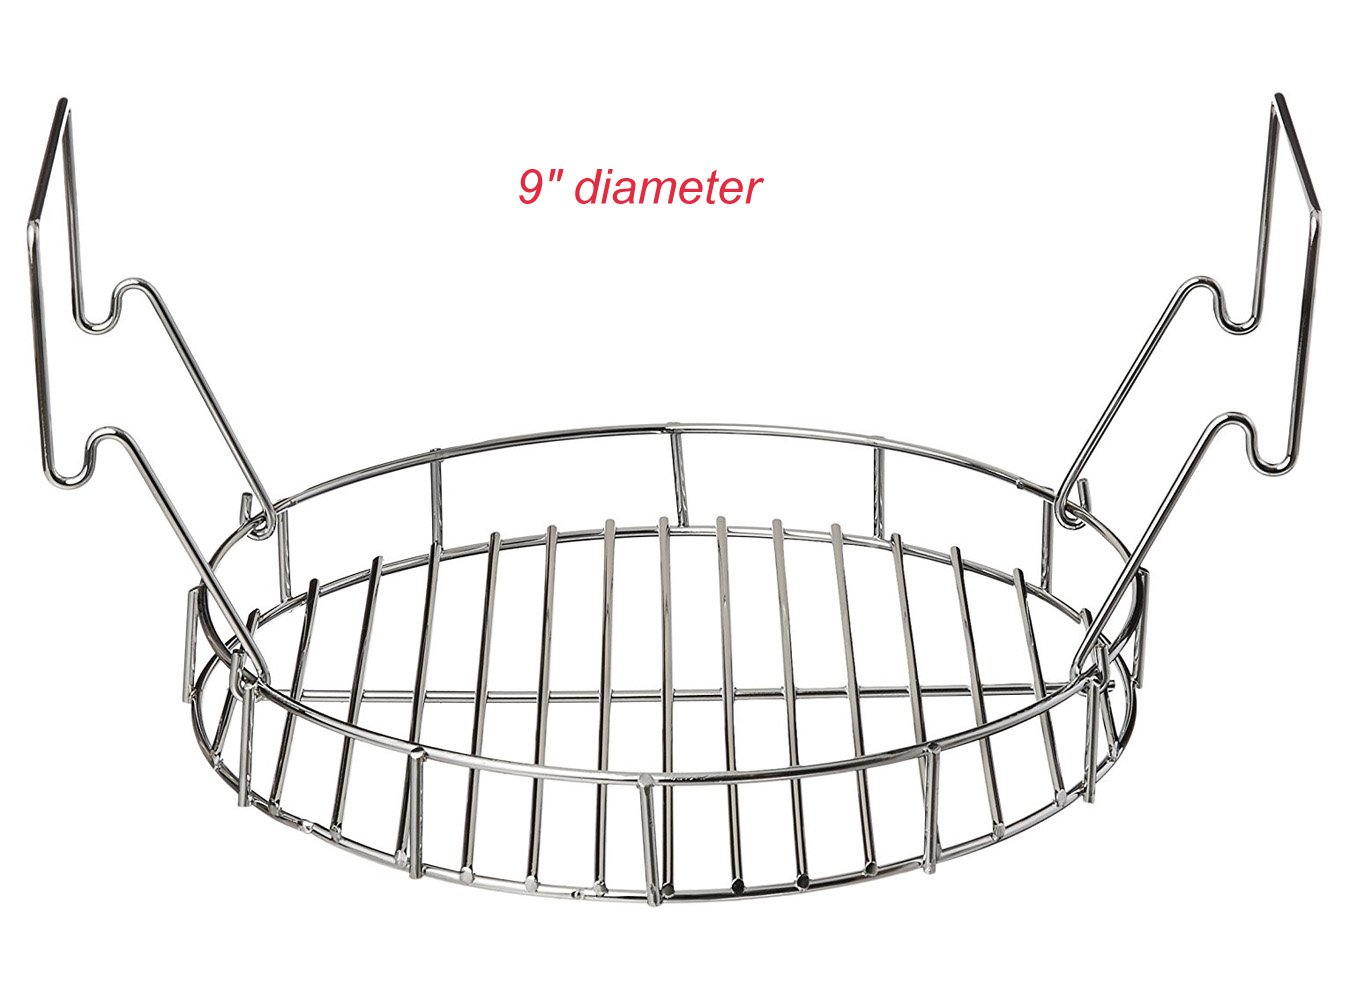 BBQ funland 9'' Diameter Durable chrome Bunk Bed Basket for The Big Easy - Perfect for cooking two chickens at once